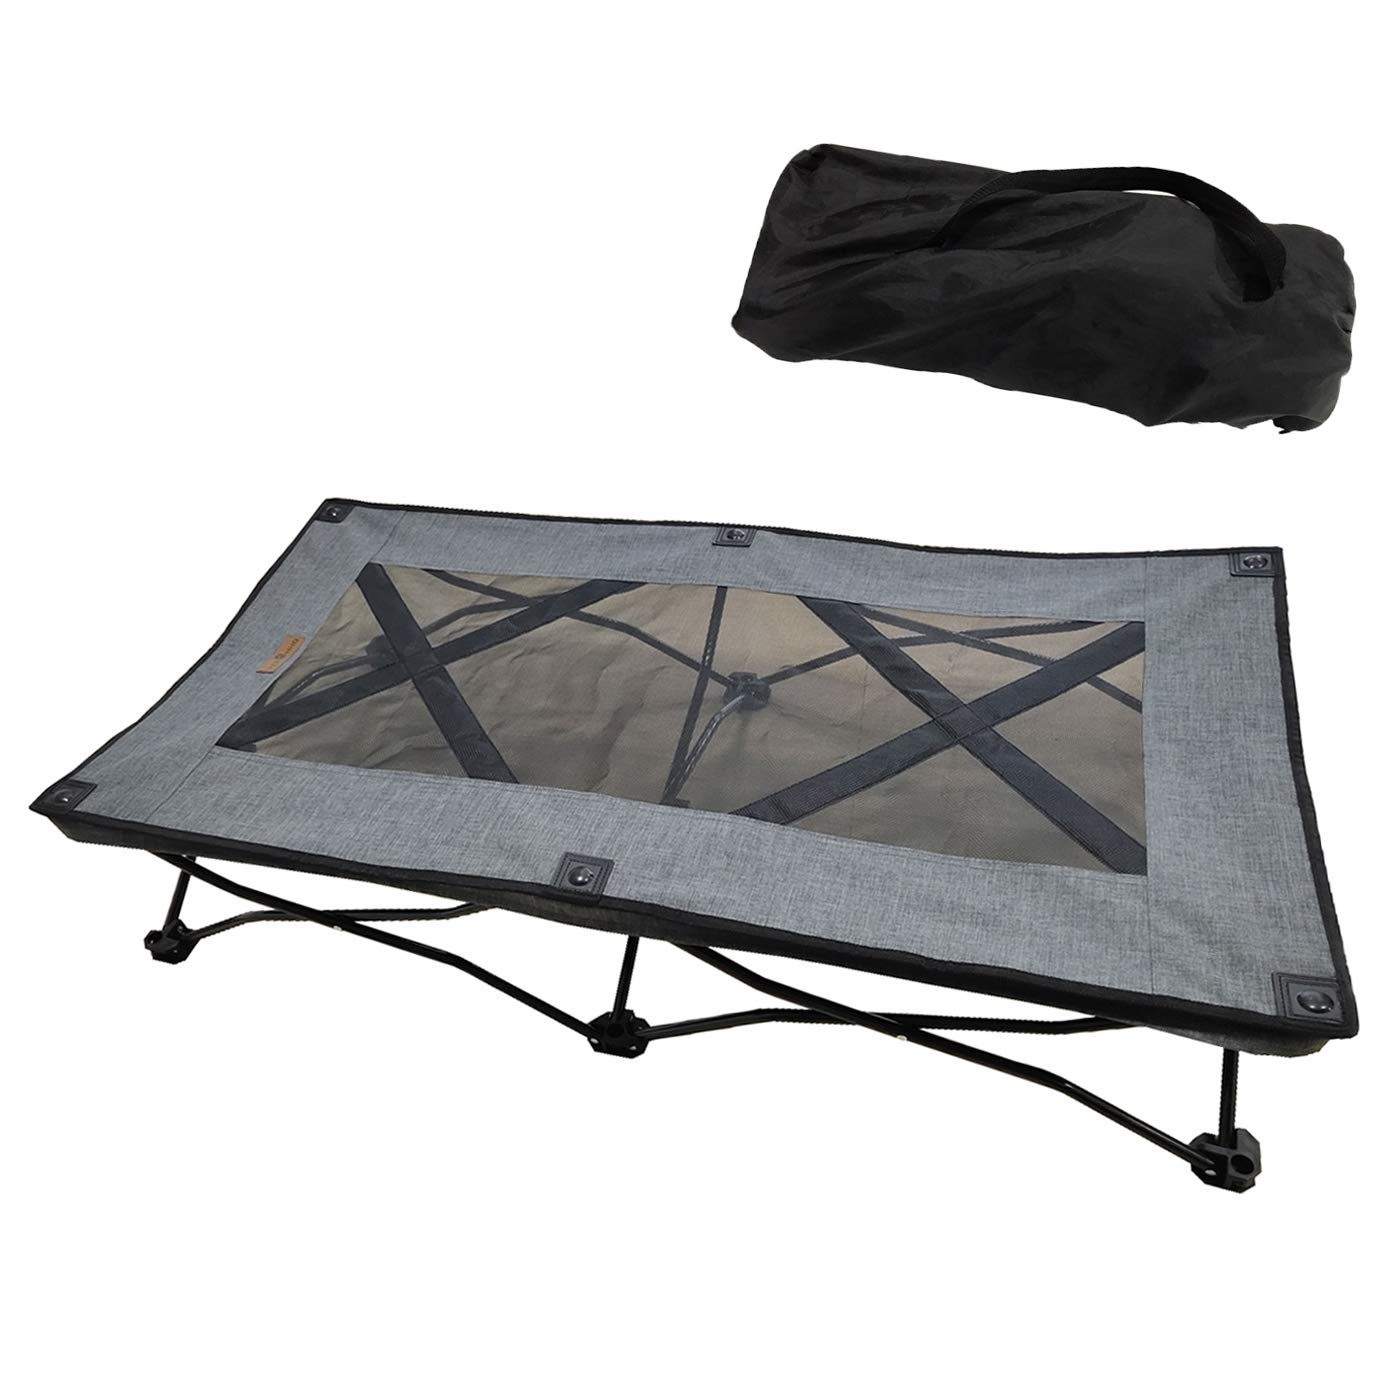 YEPHHO Large Elevated Folding Pet Bed Cot Travel Portable Breathable Cooling Textilene Mesh Sleeping Dog Bed 46 Inches Long (Grey) by YEPHHO